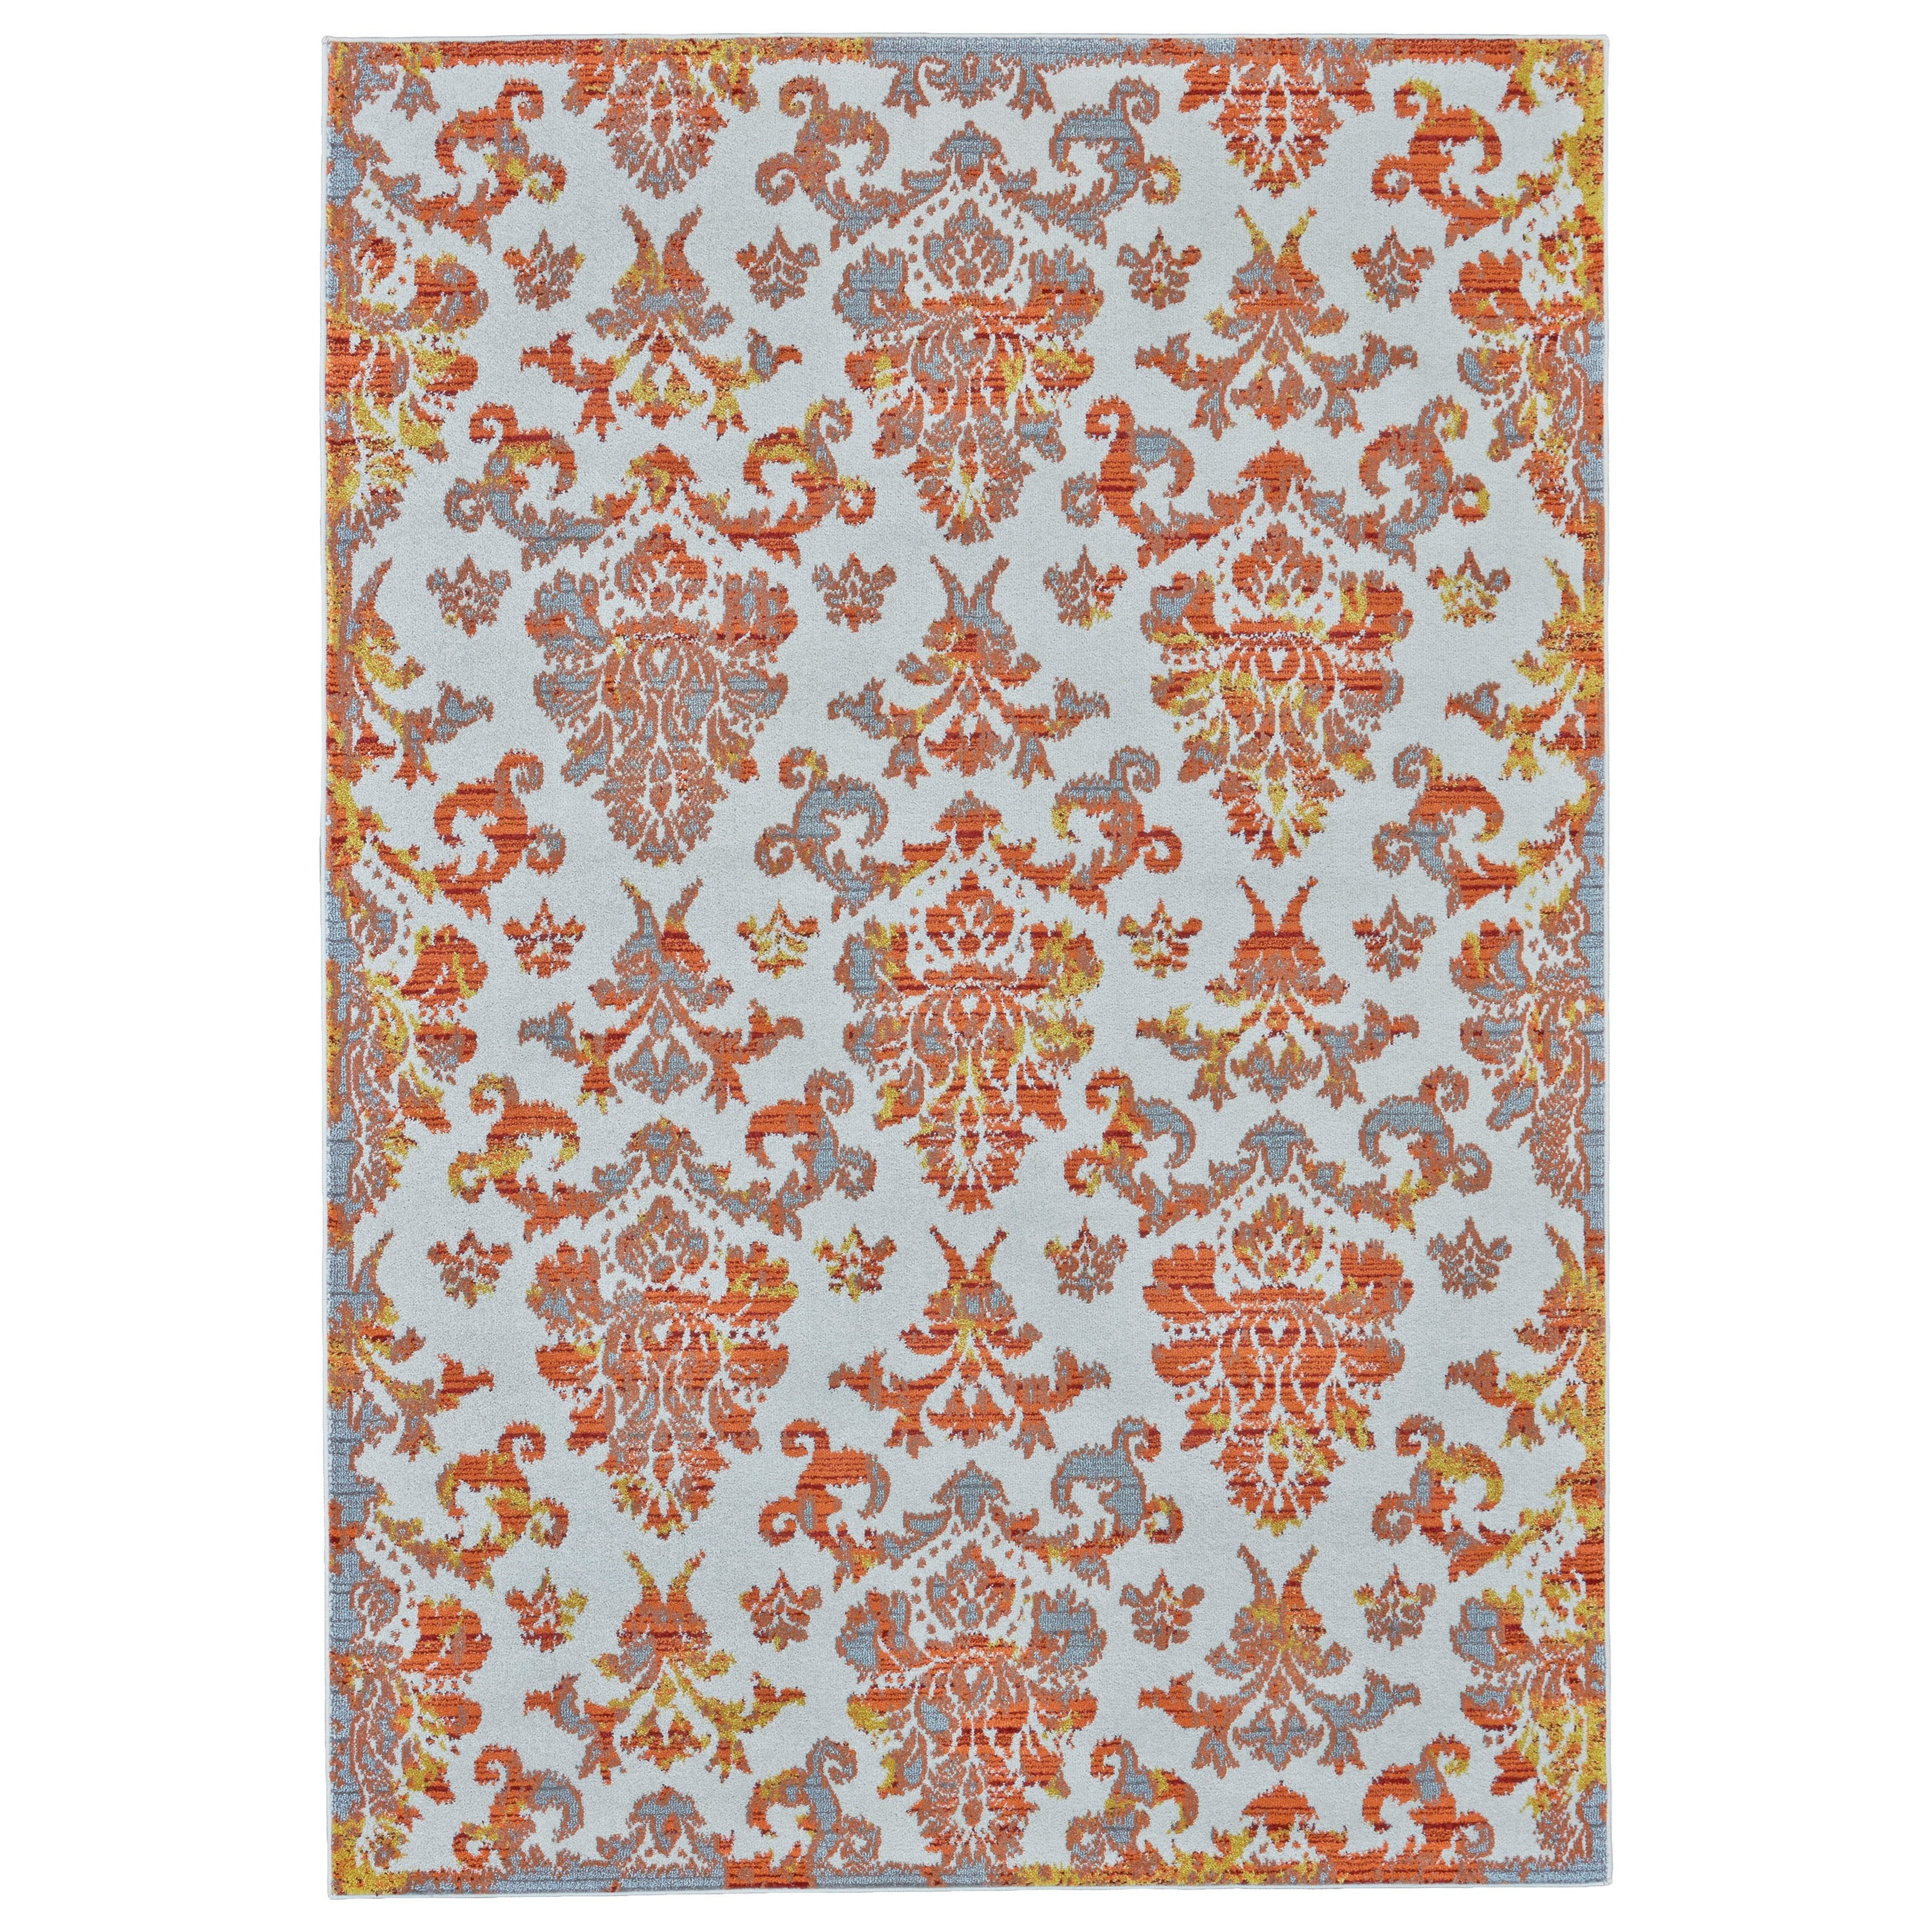 Samos Apricot 5' x 8' Area Rug by Feizy Rugs at Sprintz Furniture